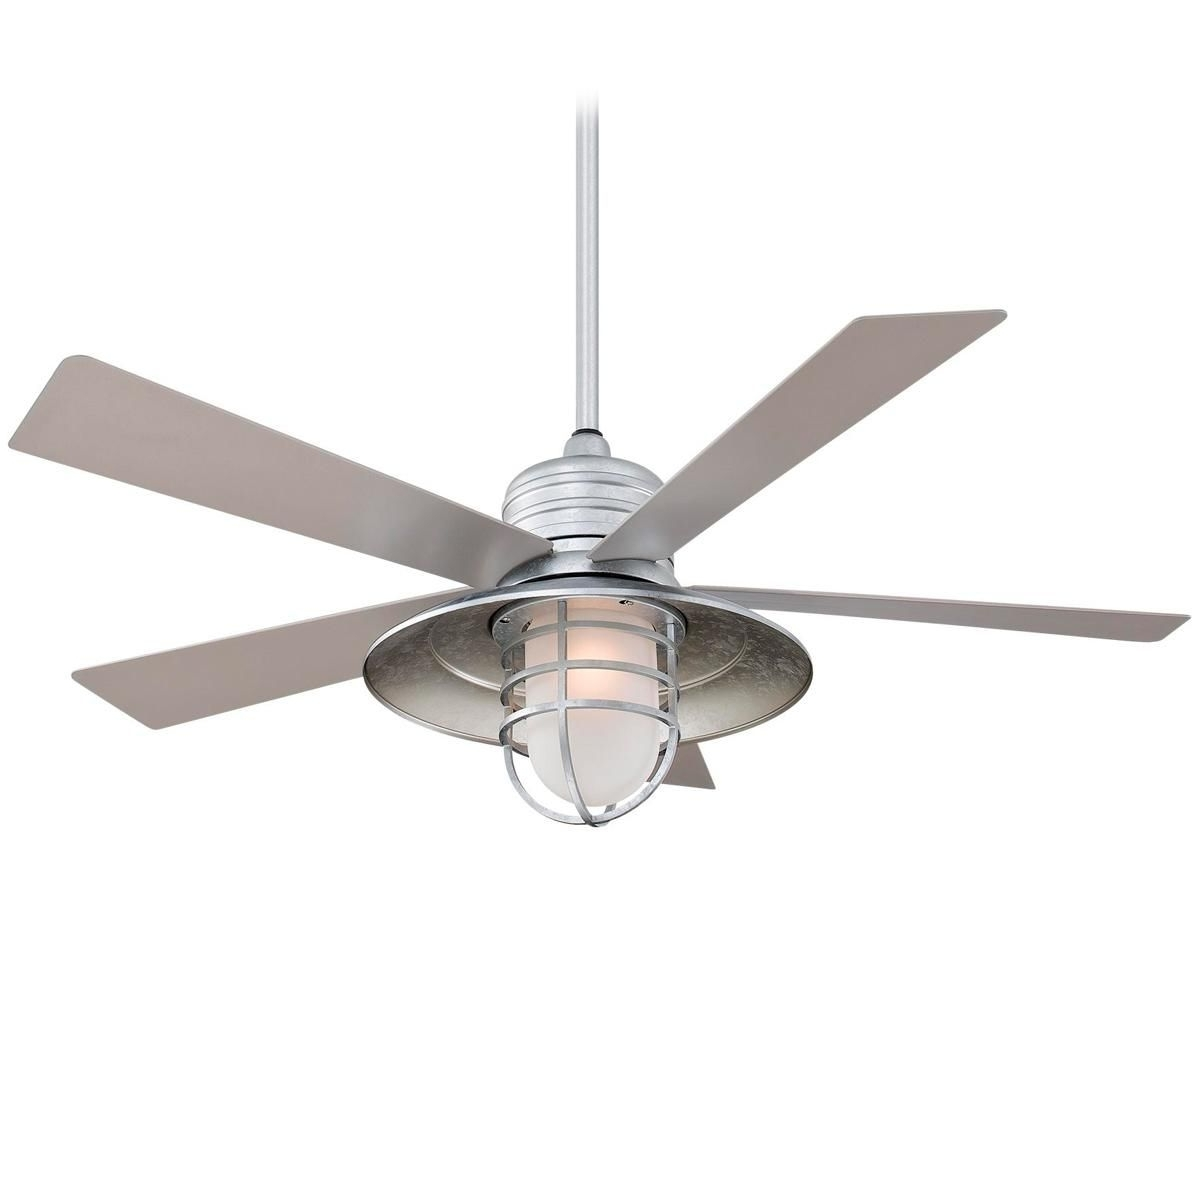 Ceiling Fan, Indoor Intended For Most Up To Date Galvanized Outdoor Ceiling Fans With Light (View 2 of 20)